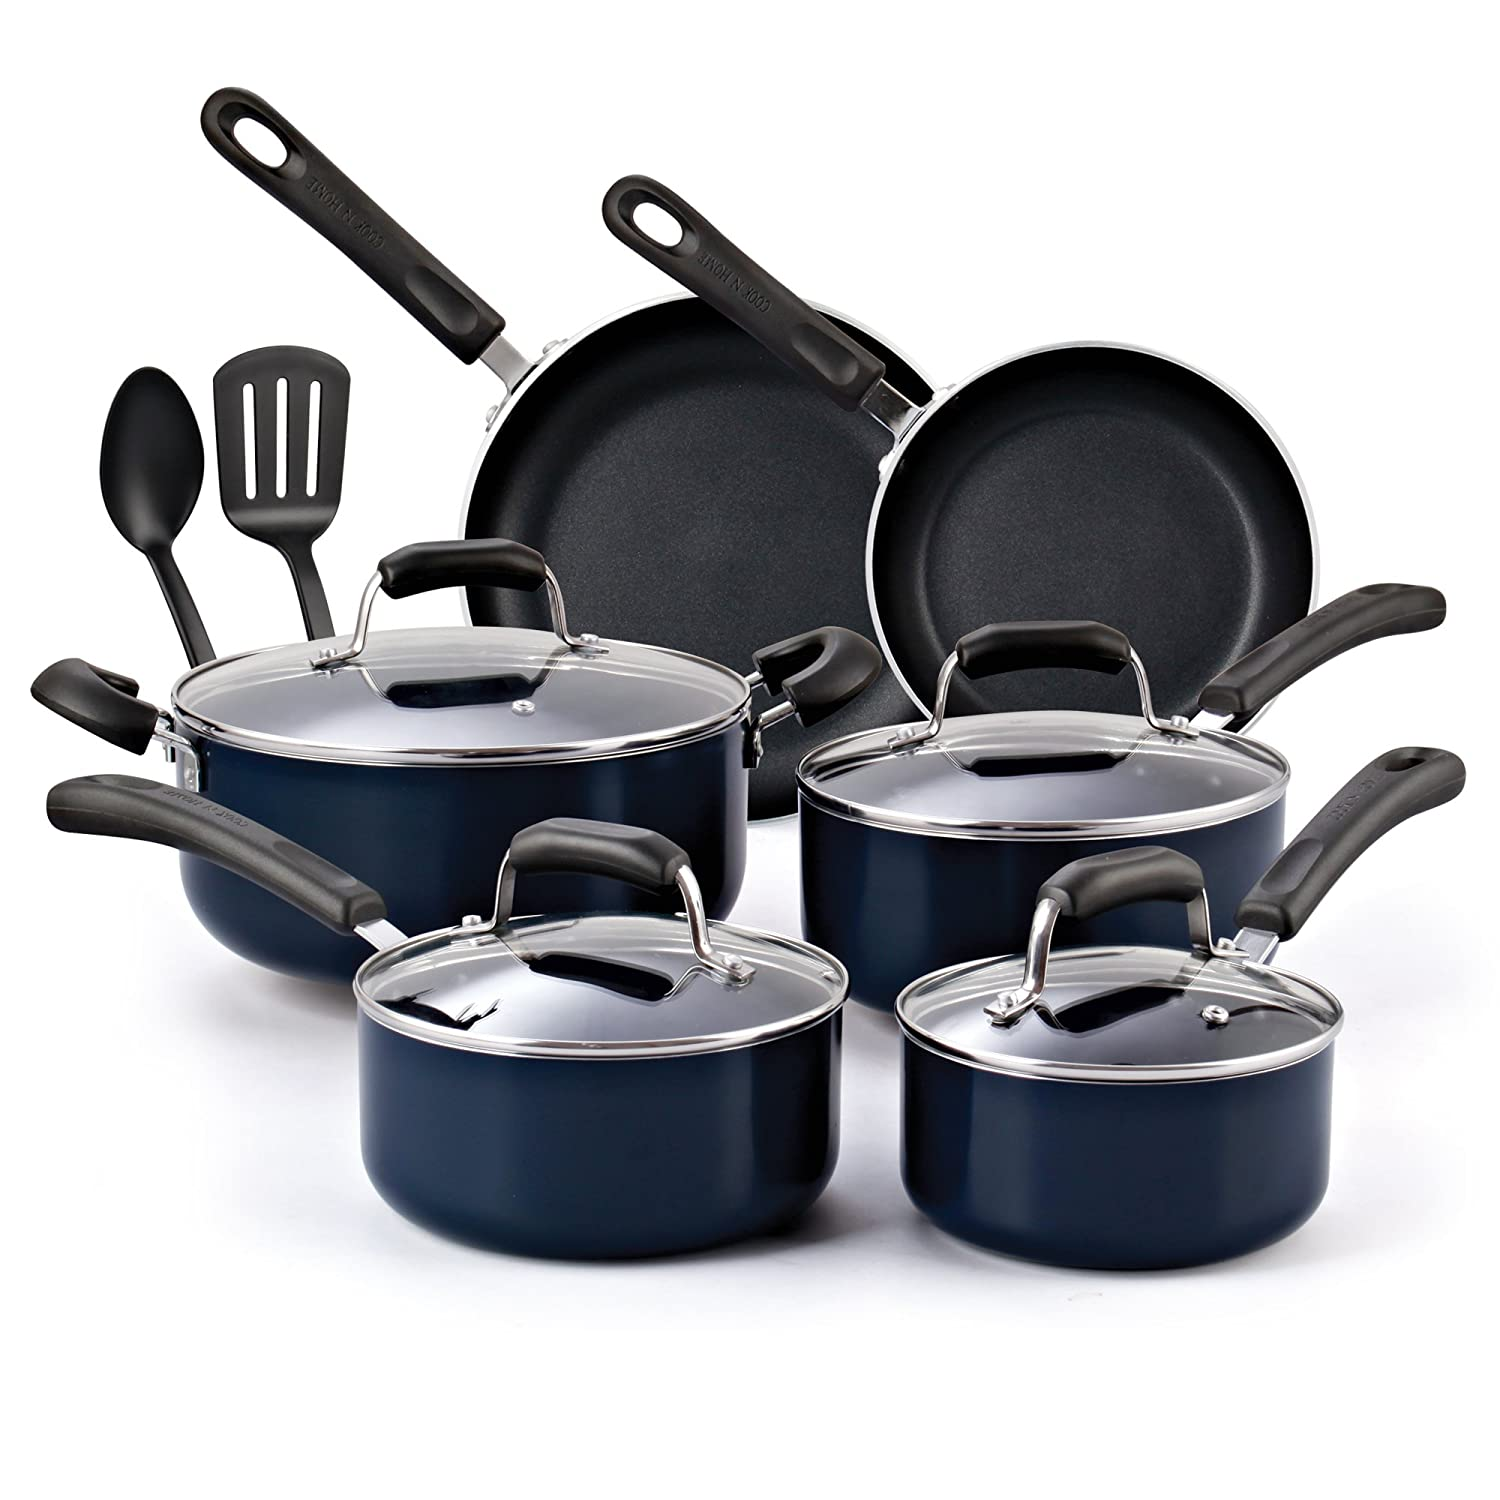 Cook N Home 12-Piece Nonstick Stay Cool Handle Cookware Set, Blue 02517